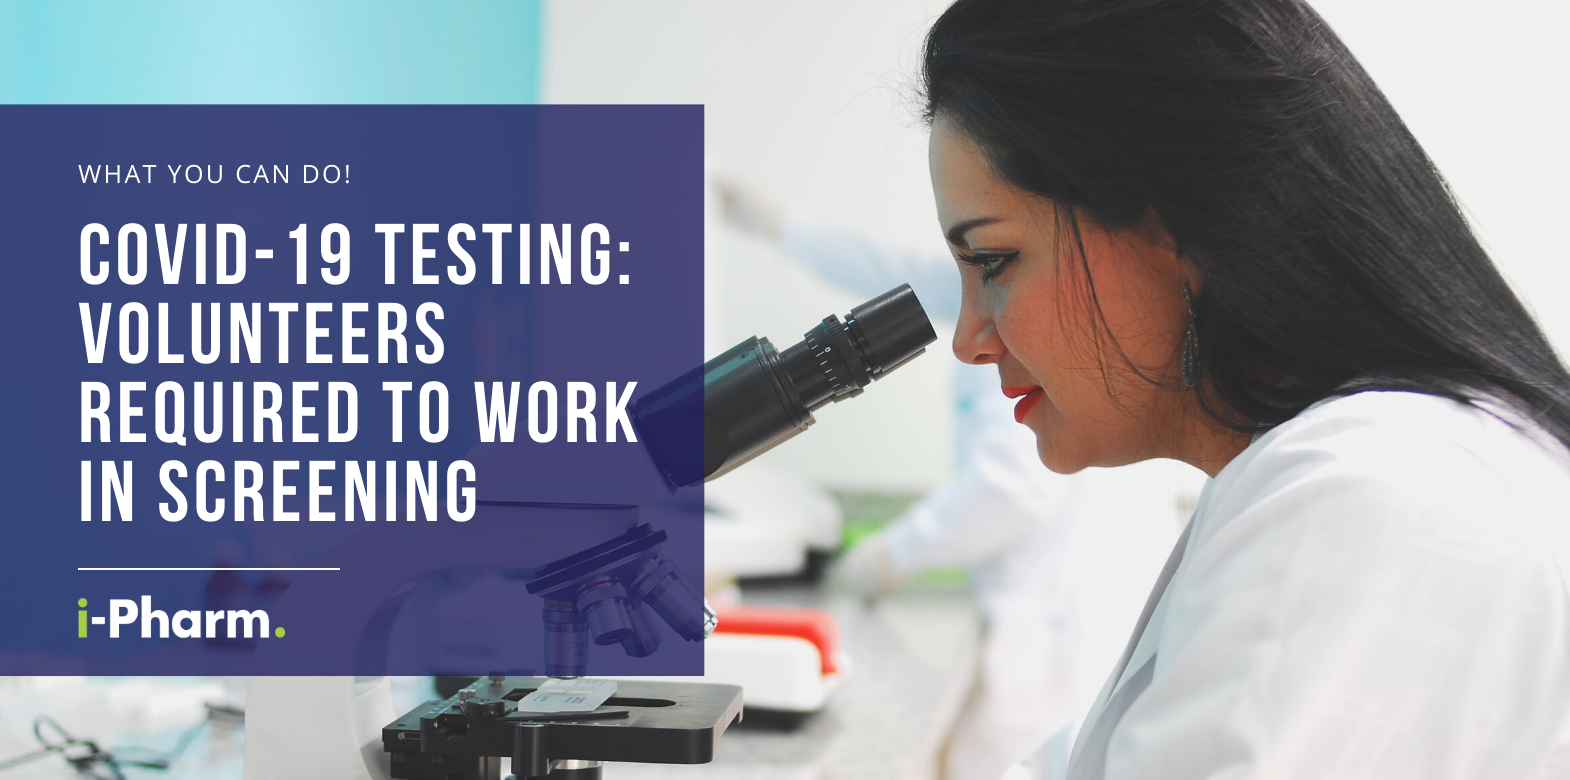 COVID-19 Testing: Volunteers required to work in screening!